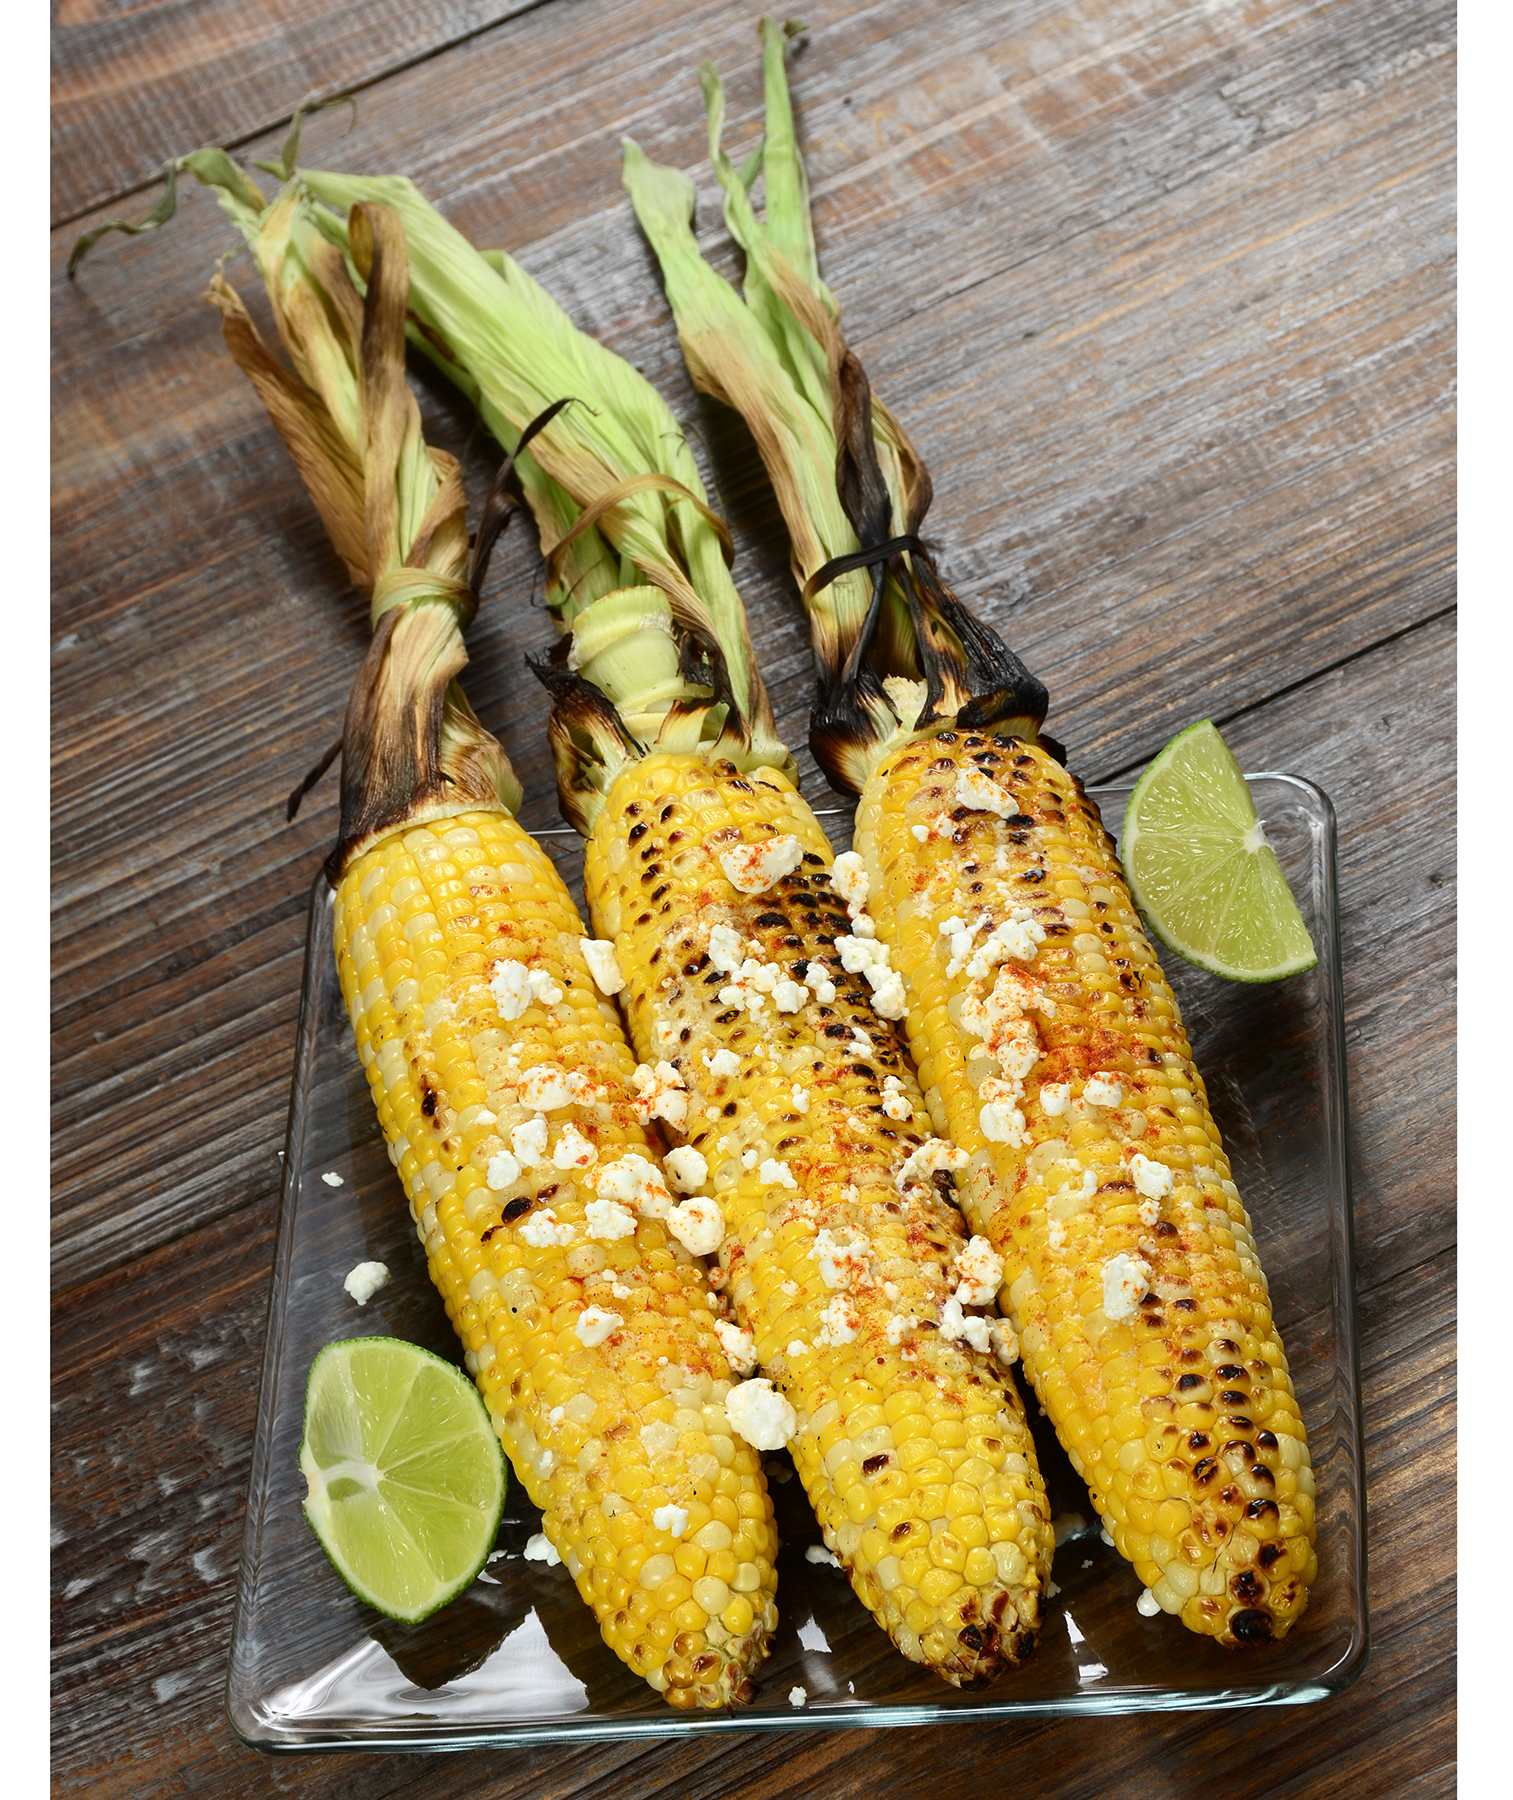 Grilled corn with cotija